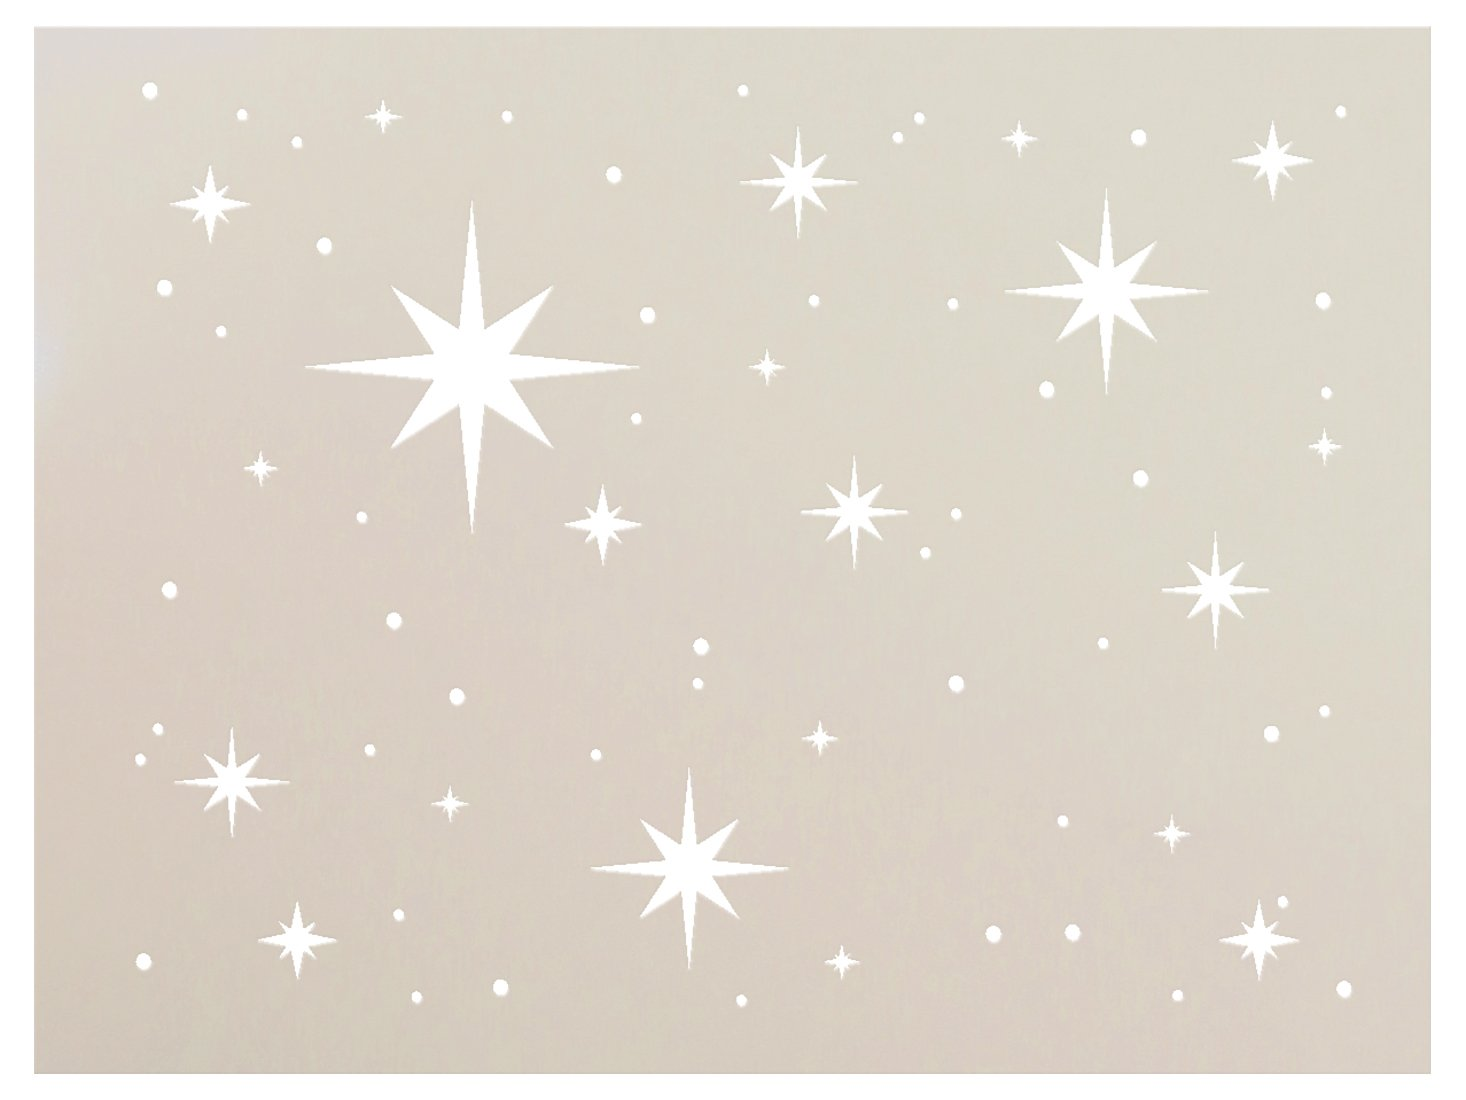 Twinkle Stars Stencil by StudioR12 | Fun Elegant - Reusable Mylar Template | Painting, Chalk, Mixed Media | Use for DIY Home Decor - STCL578_5 | Multiple Sizes Available (26'' x 19'')